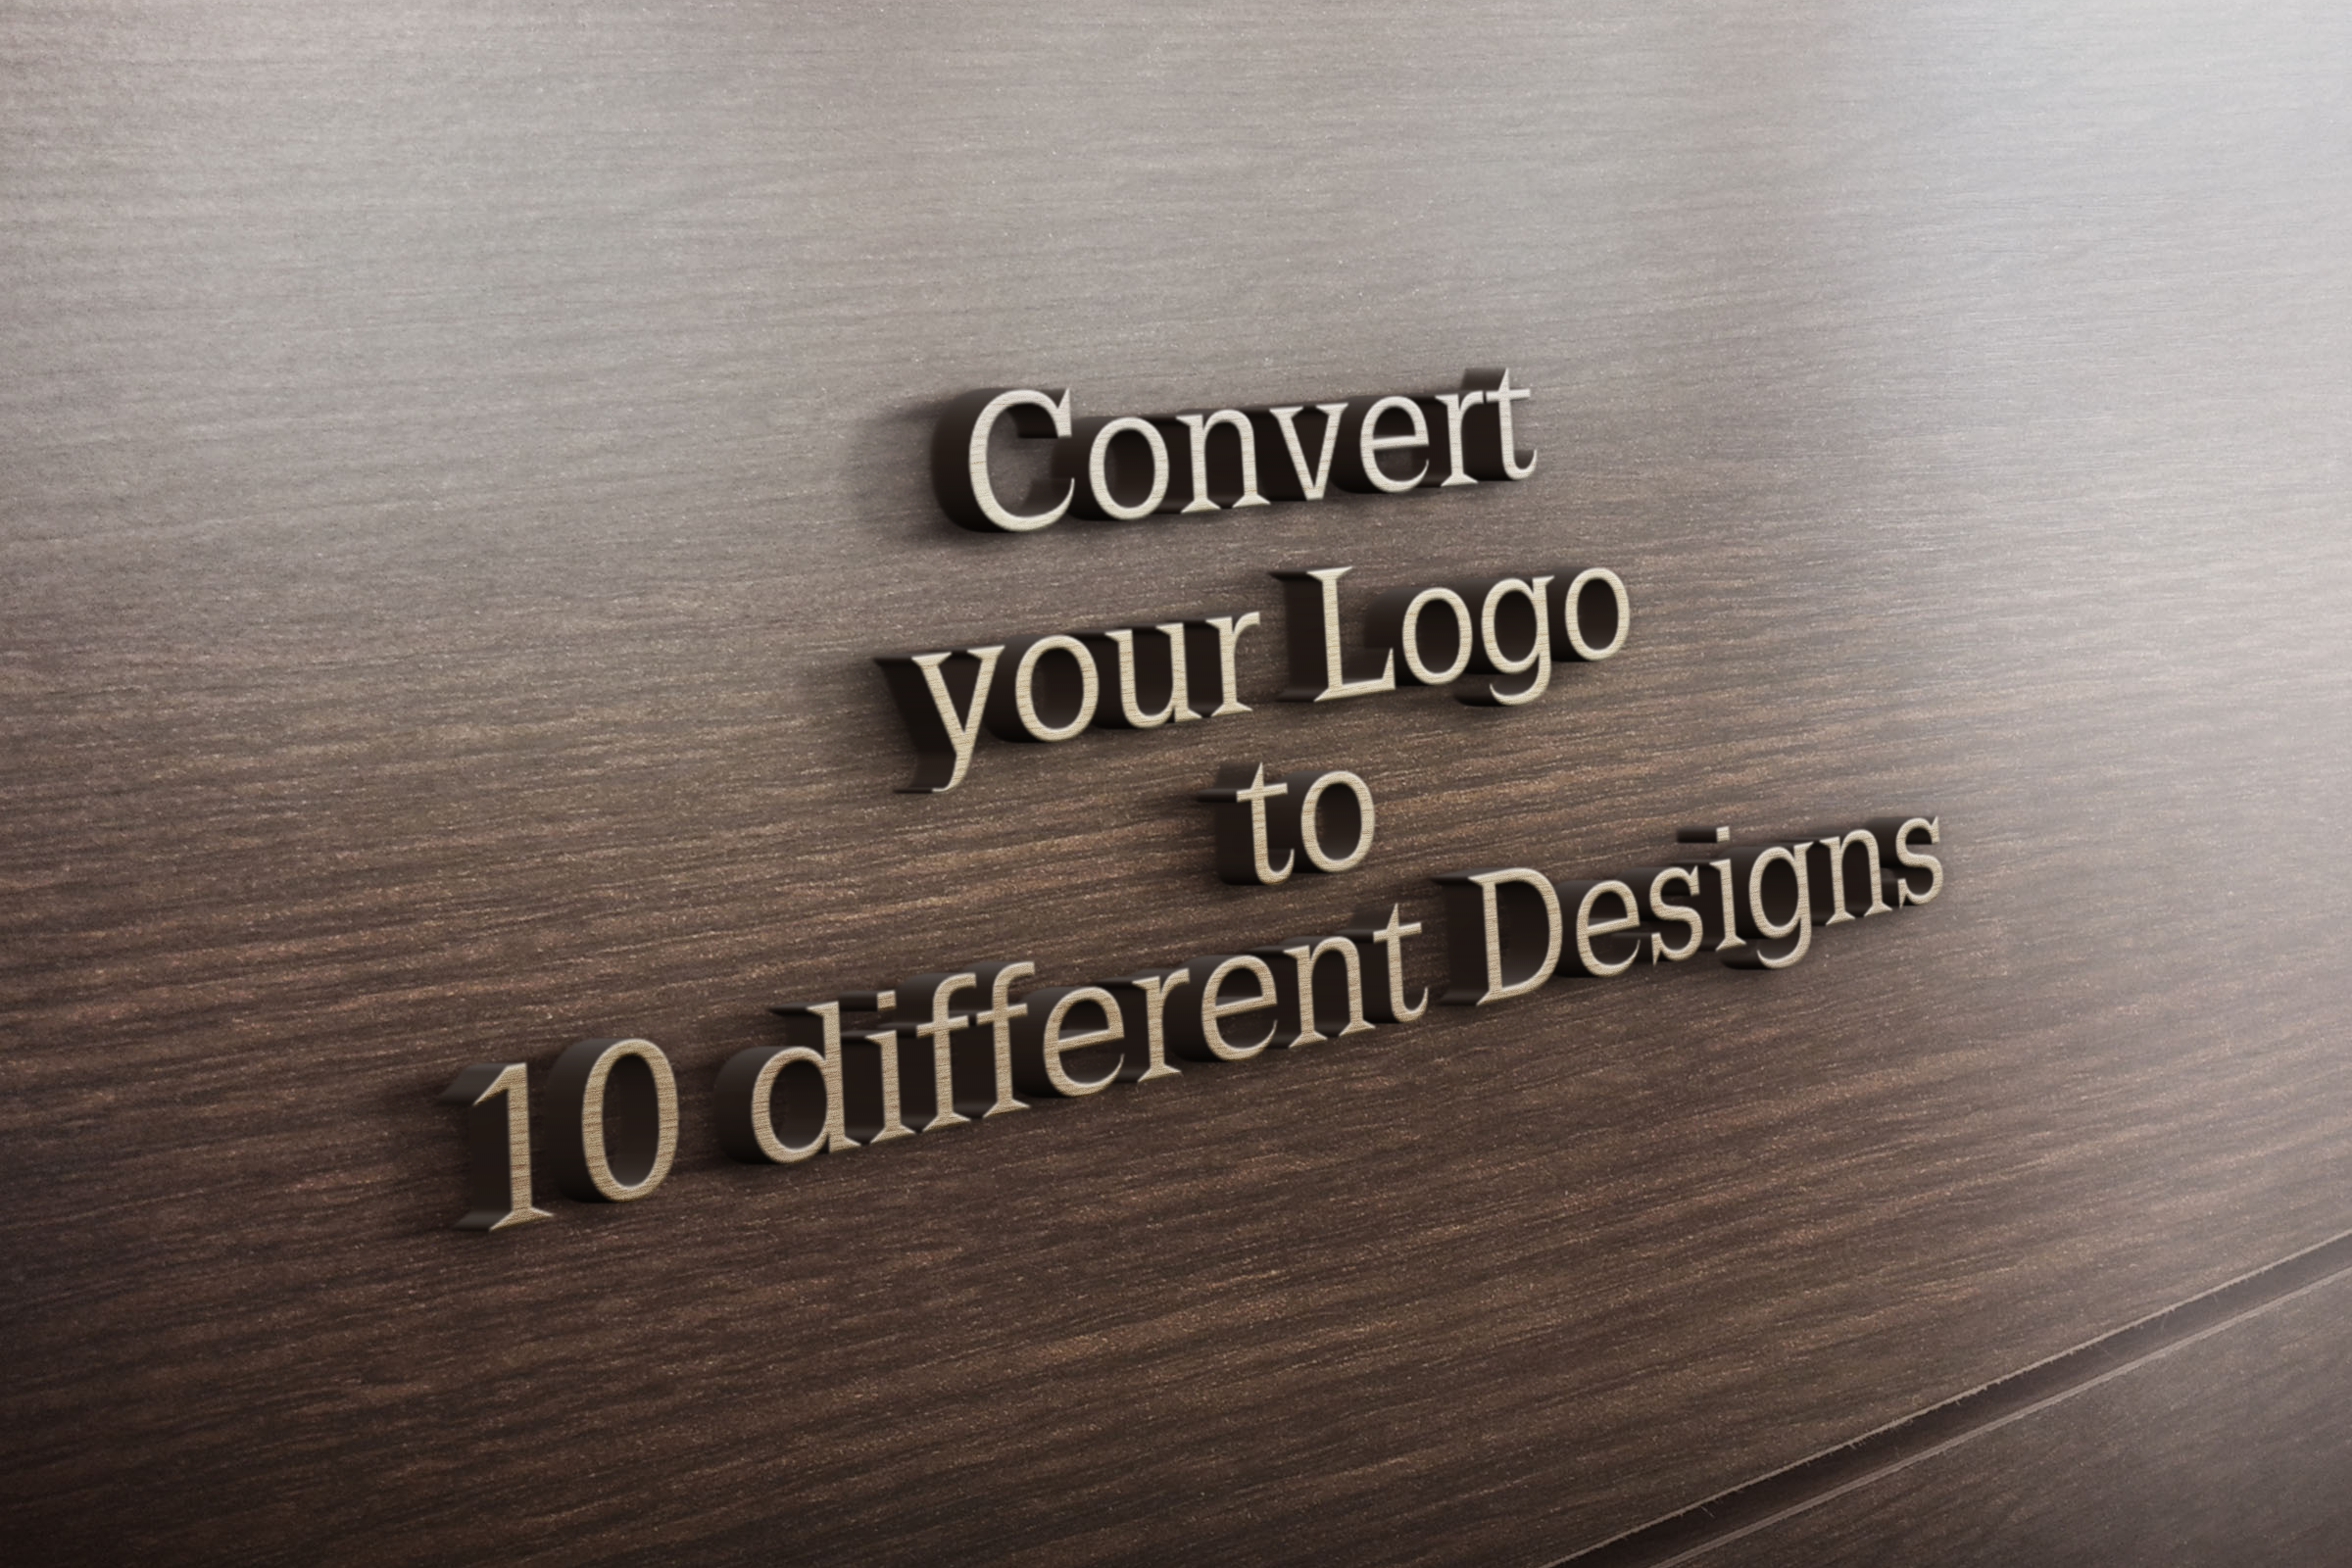 Convert your Logo to 10 Different Designs